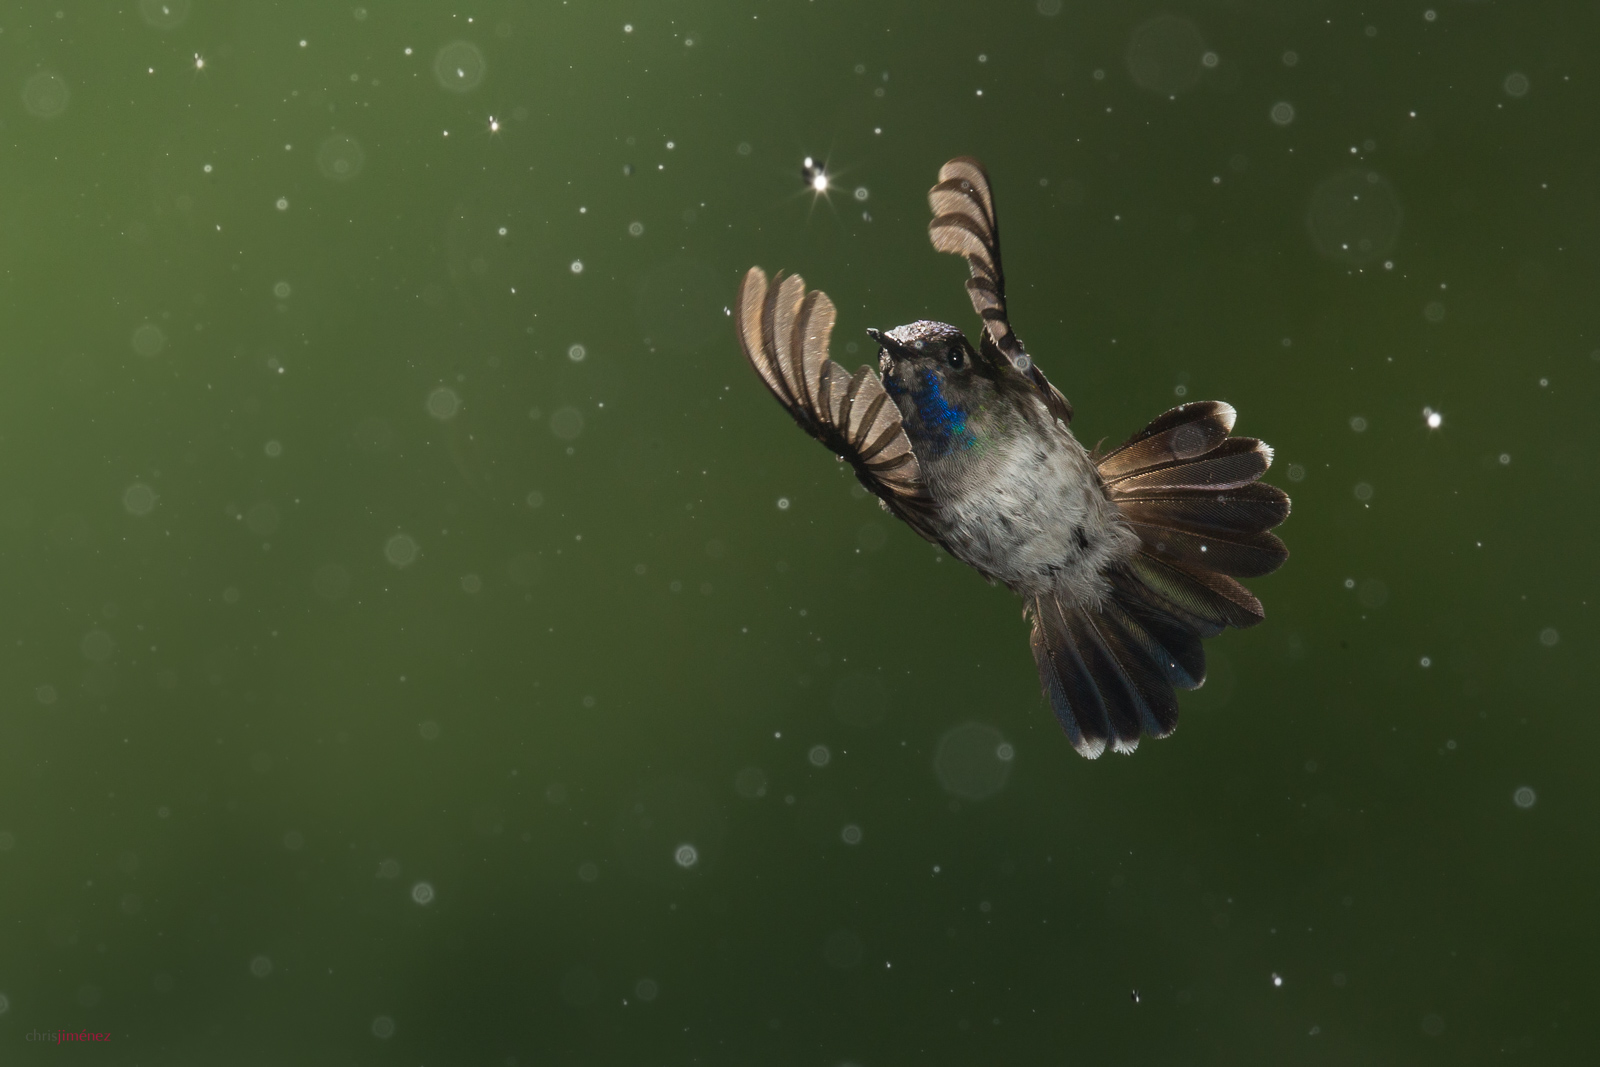 Violet-headed Hummingbird (Klais guimeti) male, in flight under the rain at the lowlands of Costa Rica